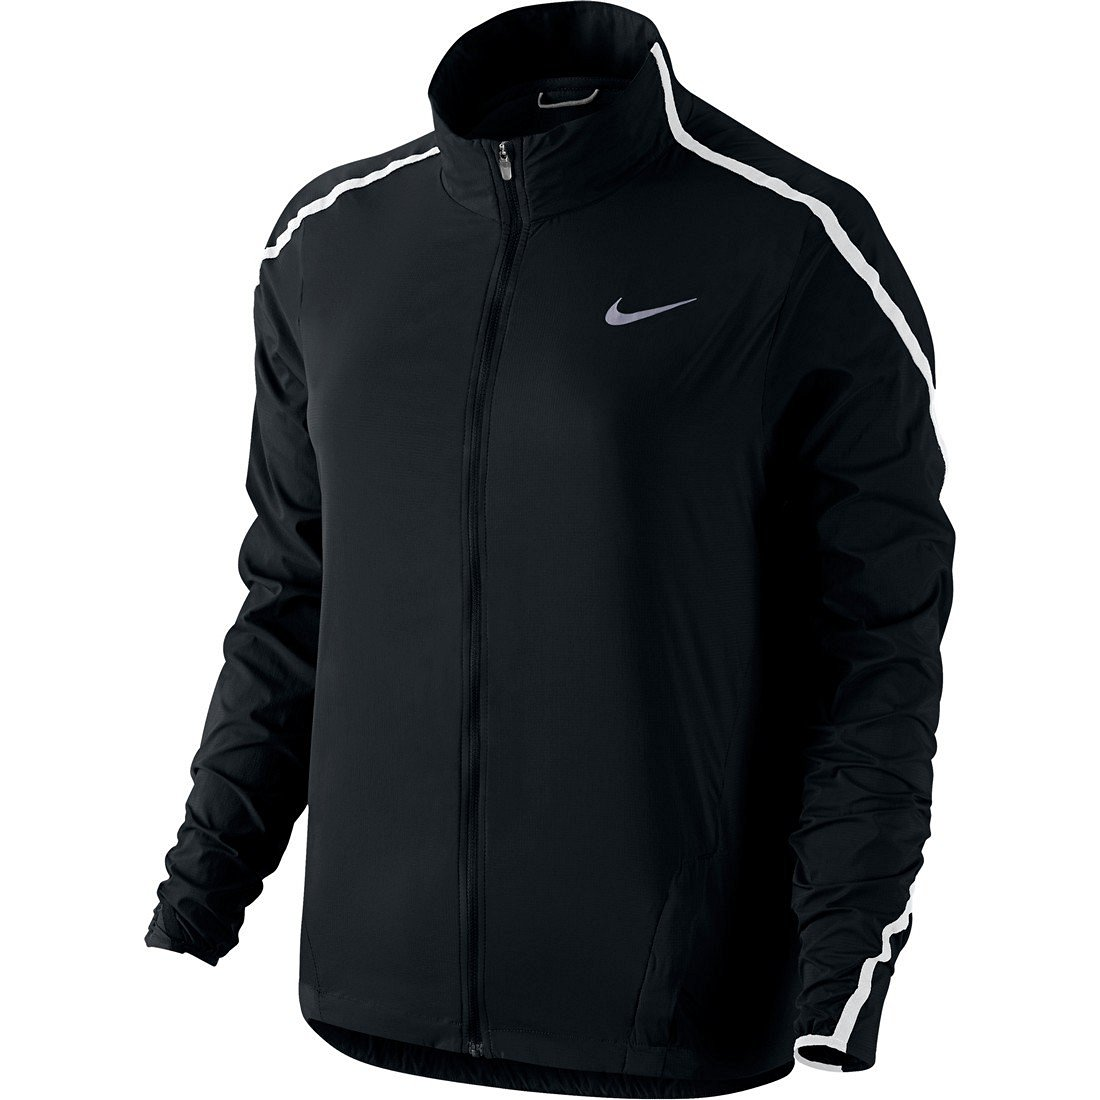 44285639e367 Get Quotations · Nike Impossibly Light Women s Running Jacket